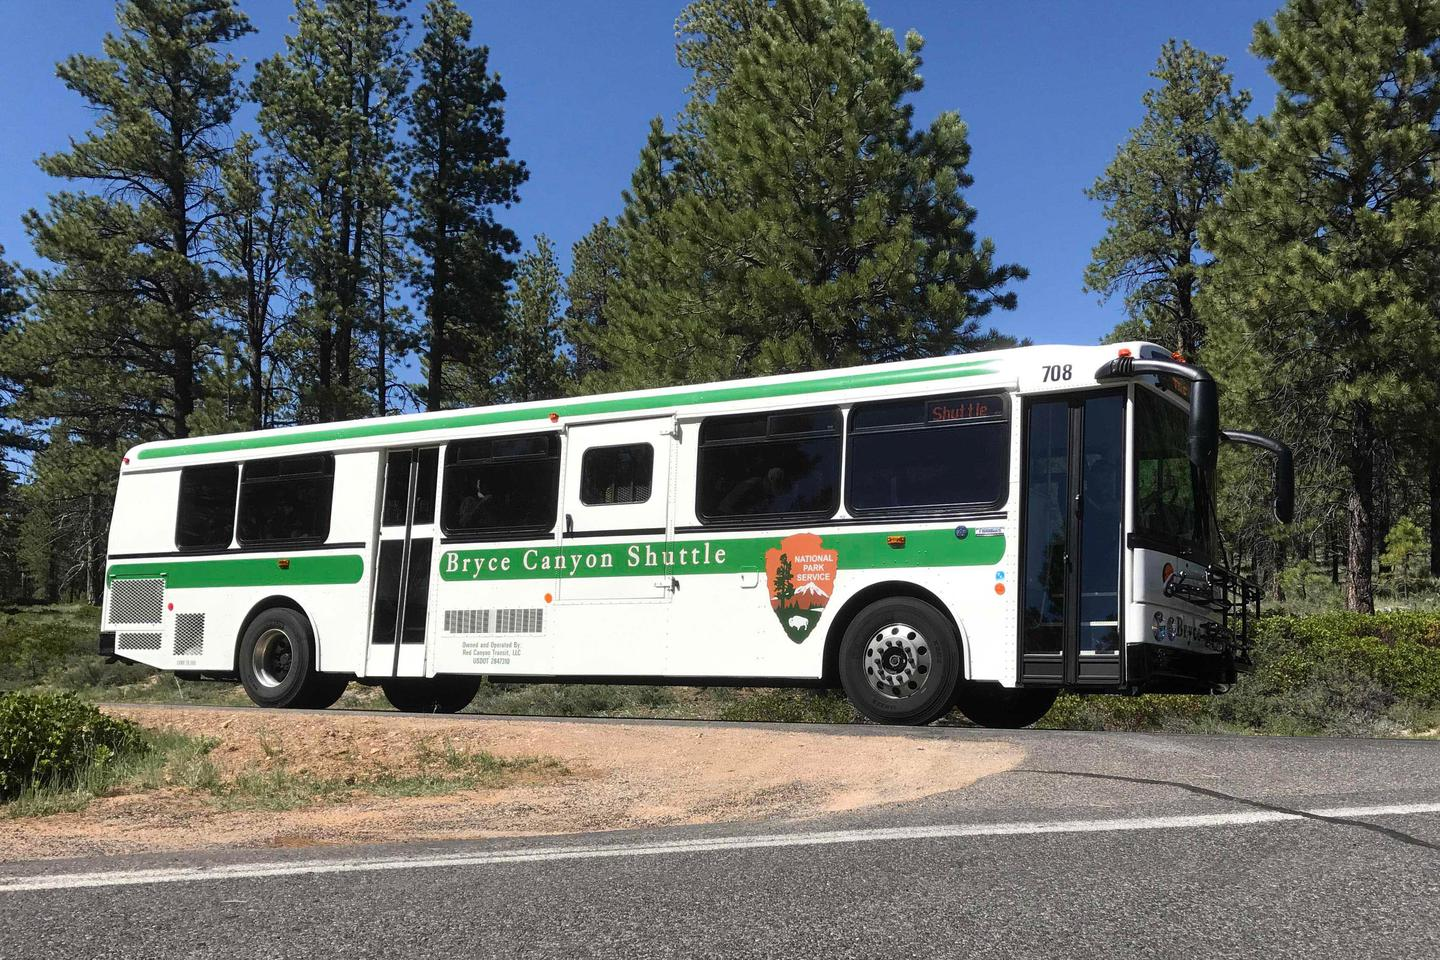 The Bryce Canyon Shuttle provides service from the Visitor CenterFrom April to October, the Bryce Canyon Shuttle provides free service from the Visitor Center to popular park overlooks and facilities.